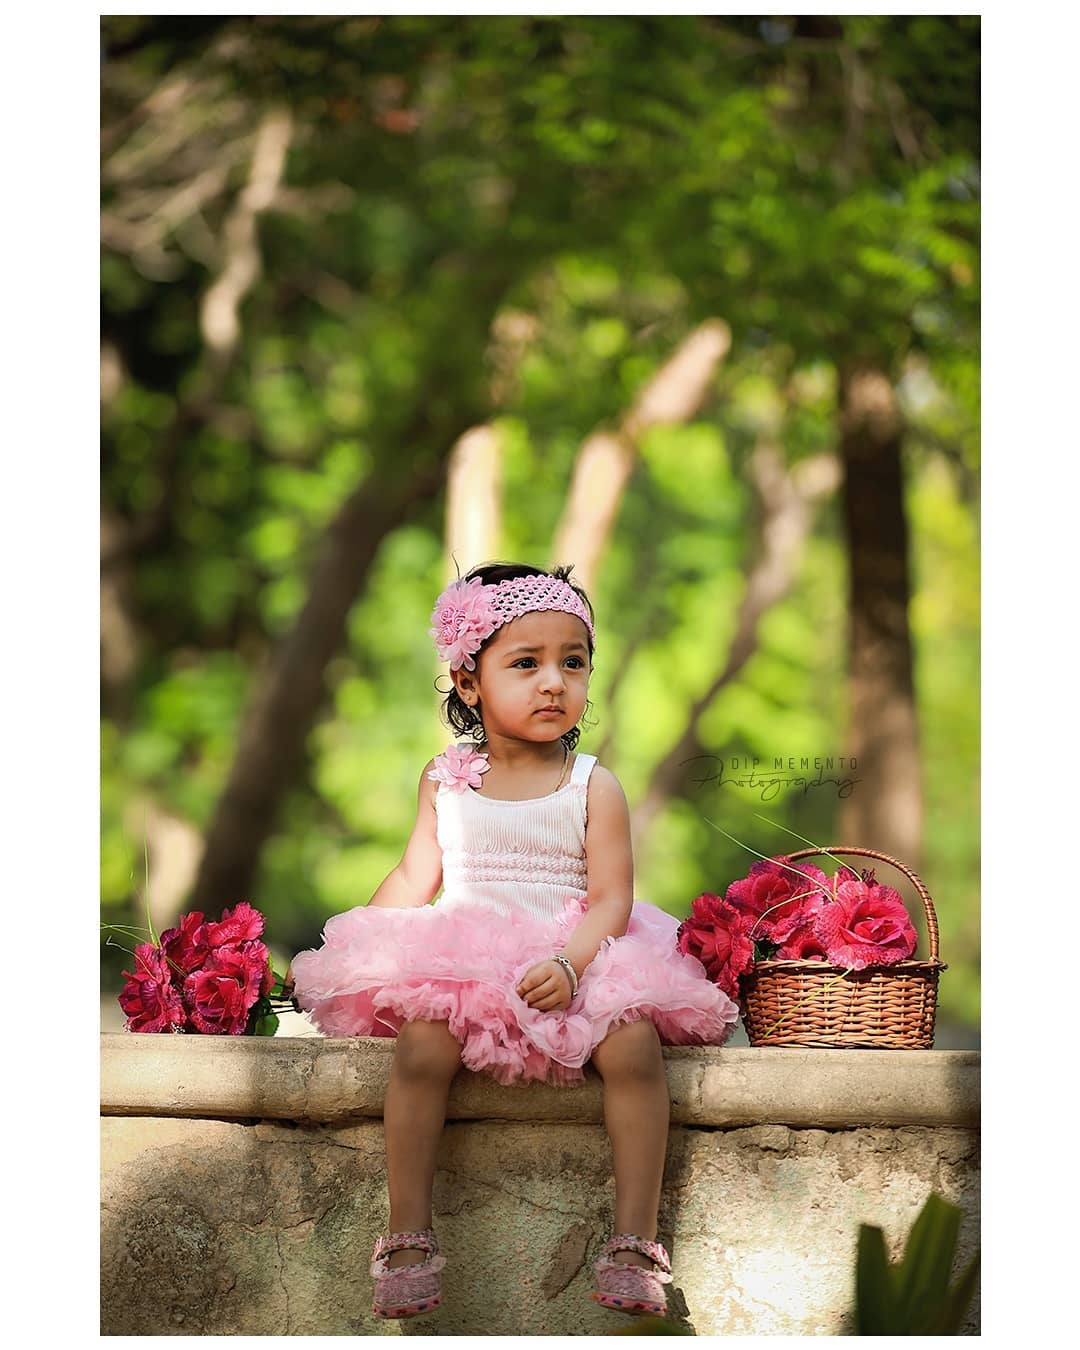 Everything is alive and beautiful. Isn't it??😍 👶Kids shoot  #kidzfashion #kidsfashion #fashiongram #igkiddies #ootdkids_ig #kidsstylezz #fashionblogger #cutest_kiddies #kidz_ootd #fashionista #fashionkidsworld #thetrendykidz #kidsmodel #kidzootd #fashiongirl #kidsbabylove #9924227745 #fashionable #kidsphotography #fashionlovers #cutekid #fashionkidsworld #kids_fashion_blogger #ootd #kidswall #fashionminis #fashionblogger #fashionmagazine #dipmementophotography #fashionaddict #Ahmedabad #cutekidsclub